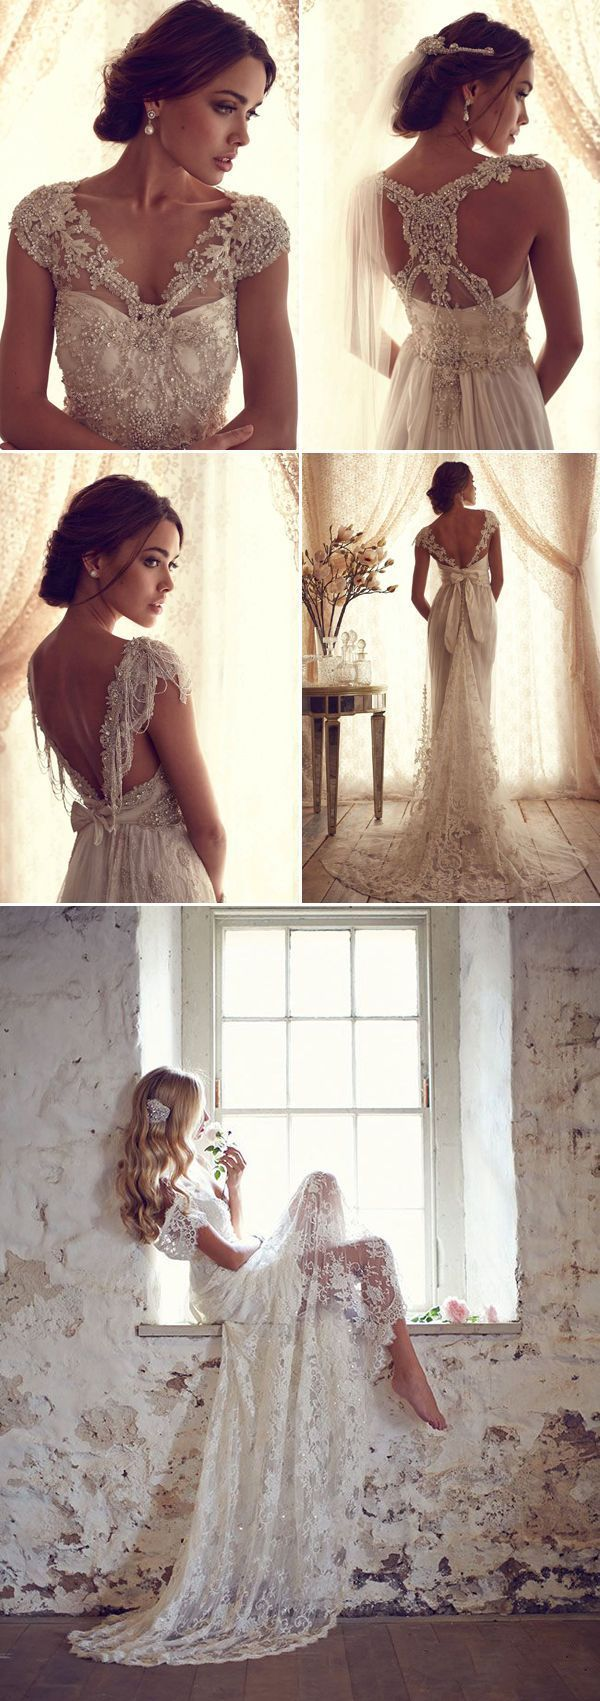 vintageinspired wedding dresses you will fall in love with